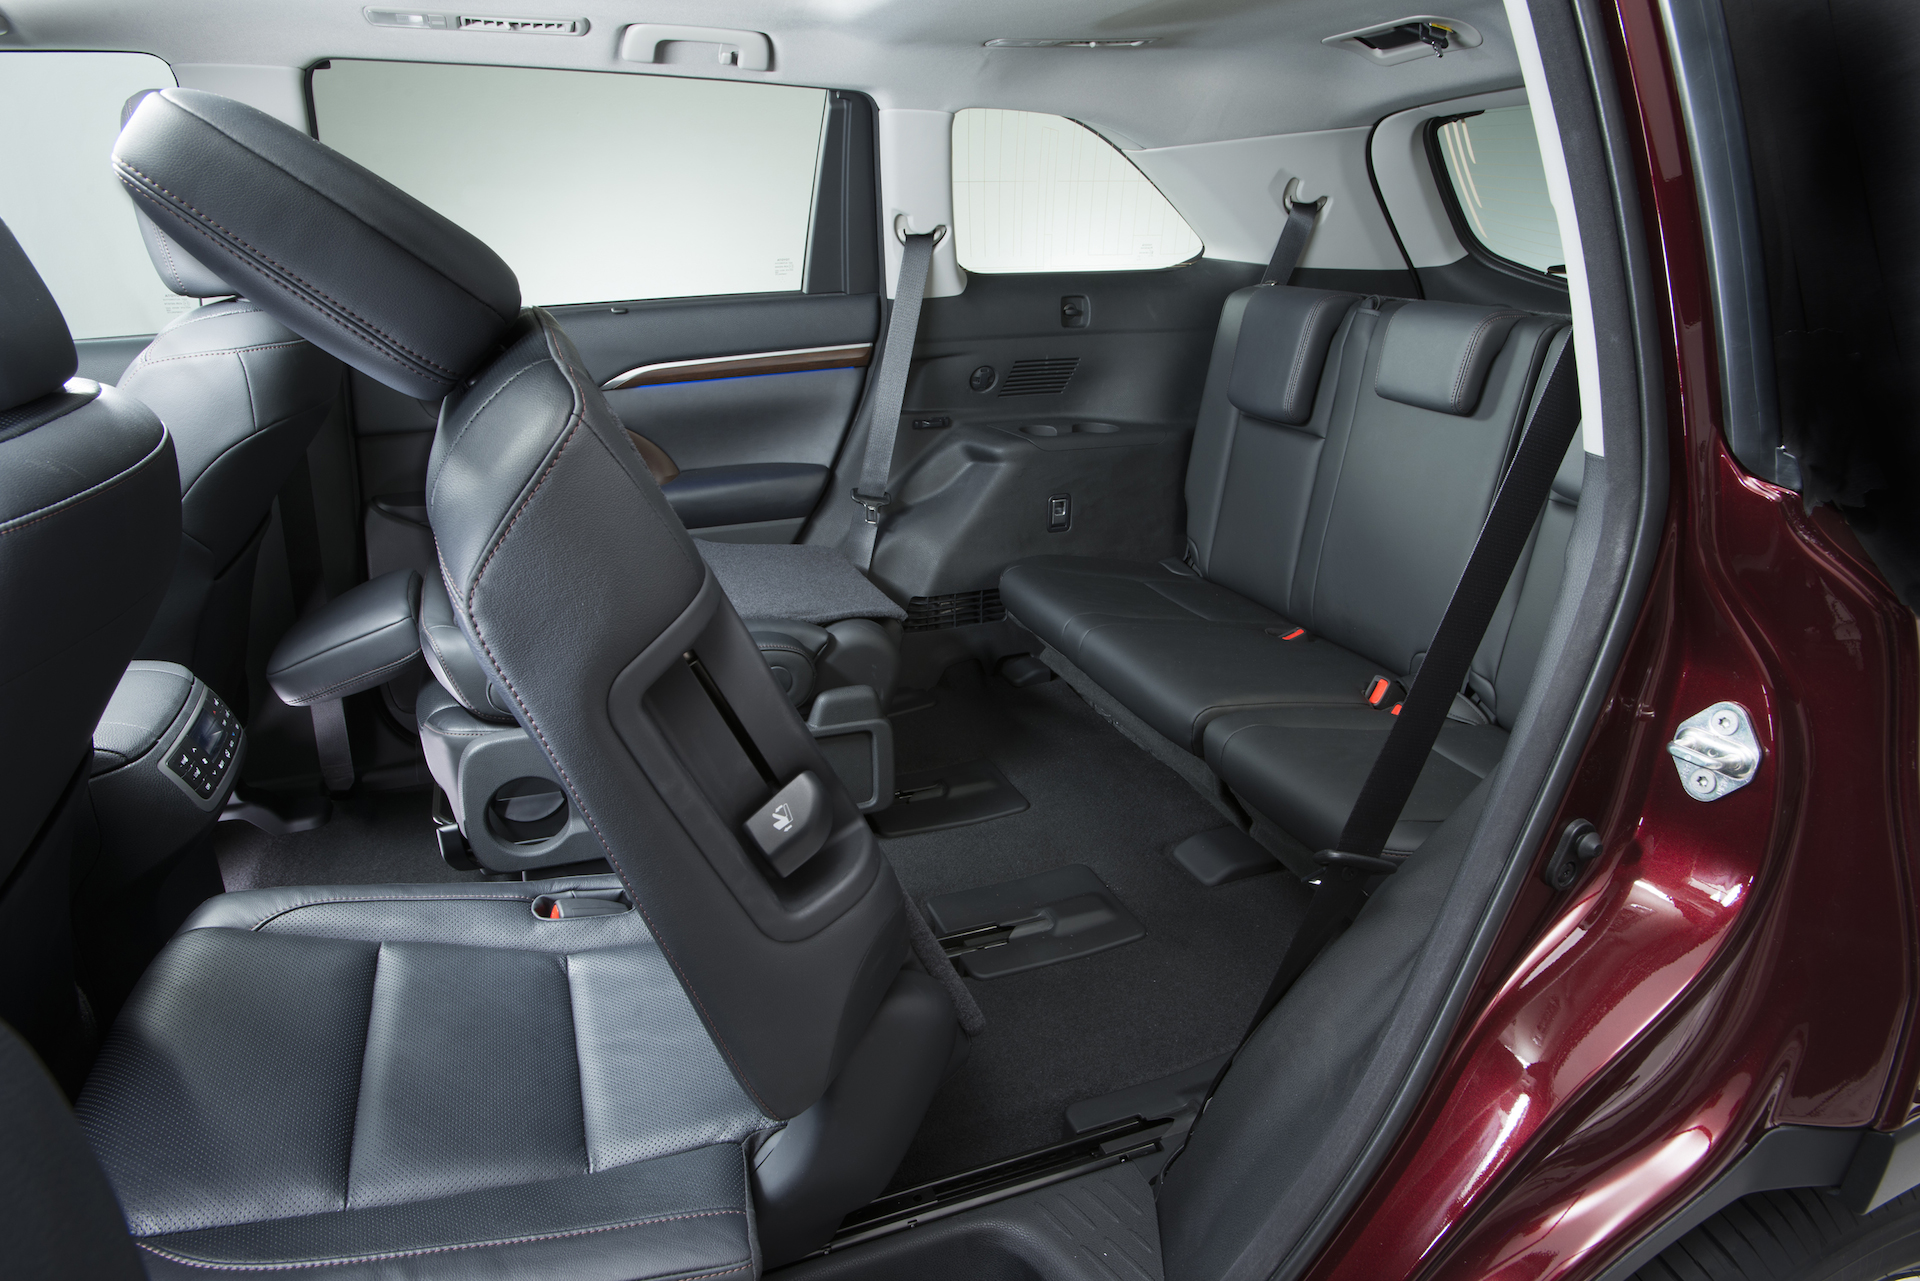 2013 ford explorer captains chairs folding chair covers for sale five most fuel efficient vehicles with third row seating